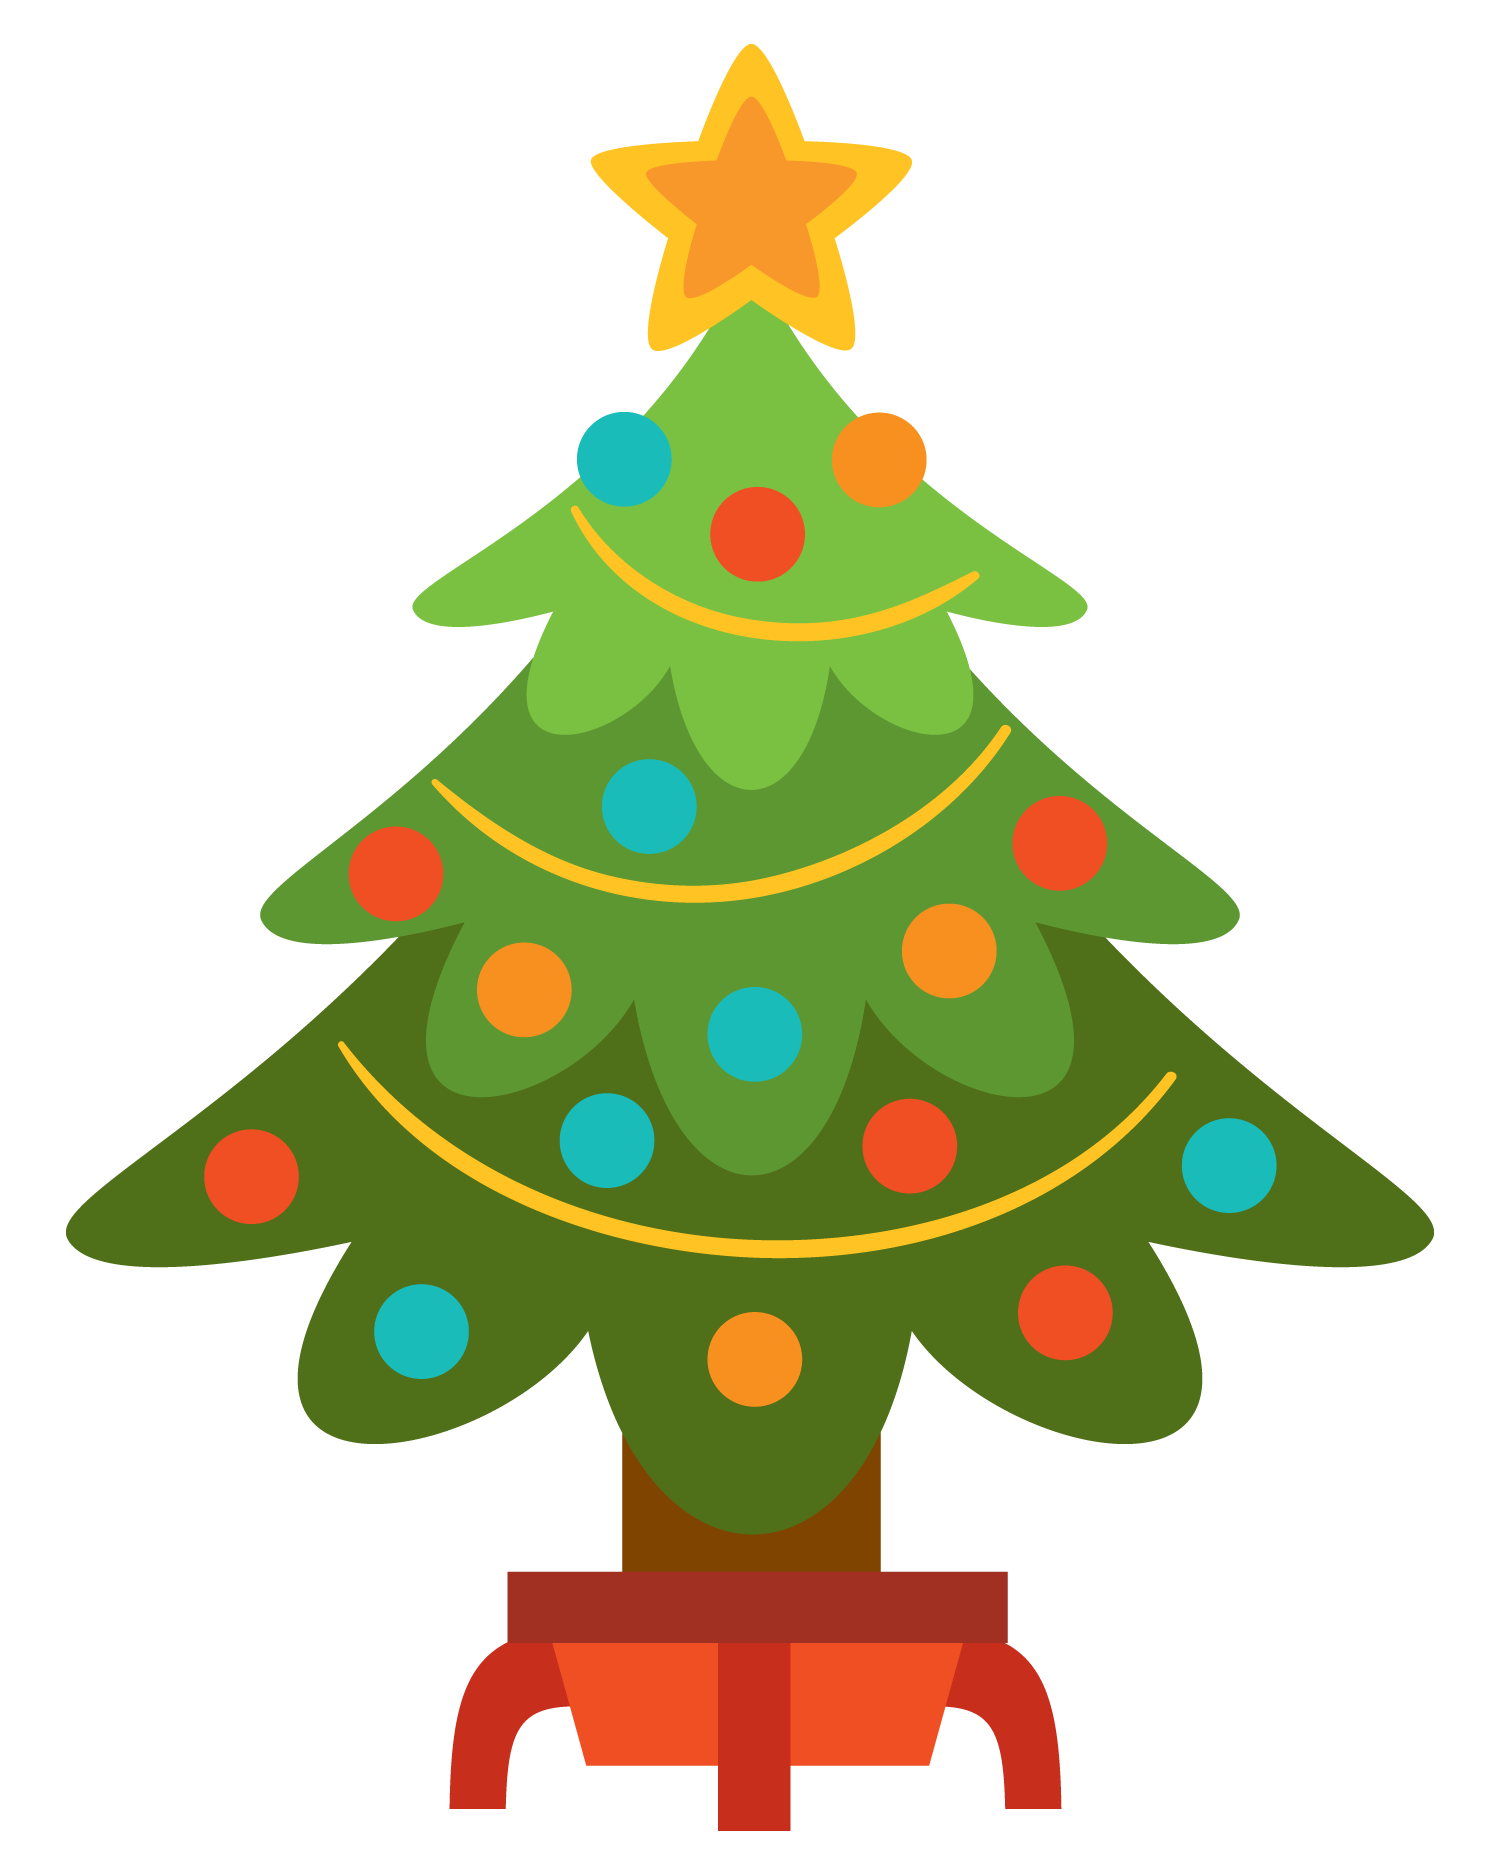 Simple Christmas Clipart Kid-Simple christmas clipart kid-15